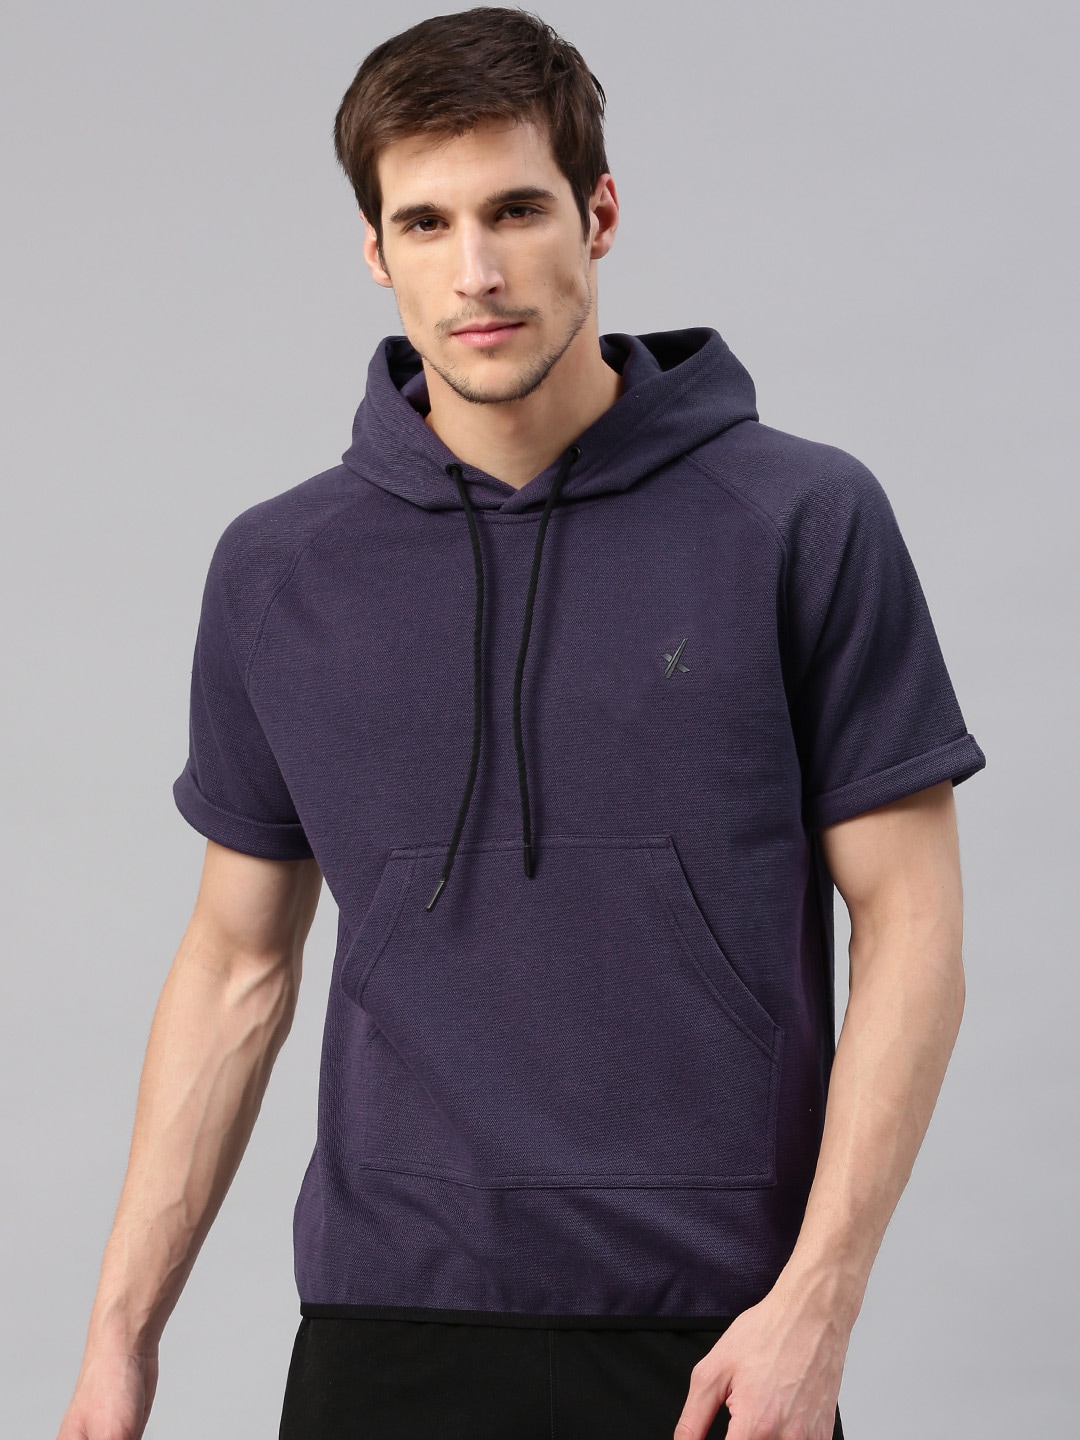 Buy HRX by Hrithik Roshan Purple Solid Hooded Men's Sweatshirt At Best Price